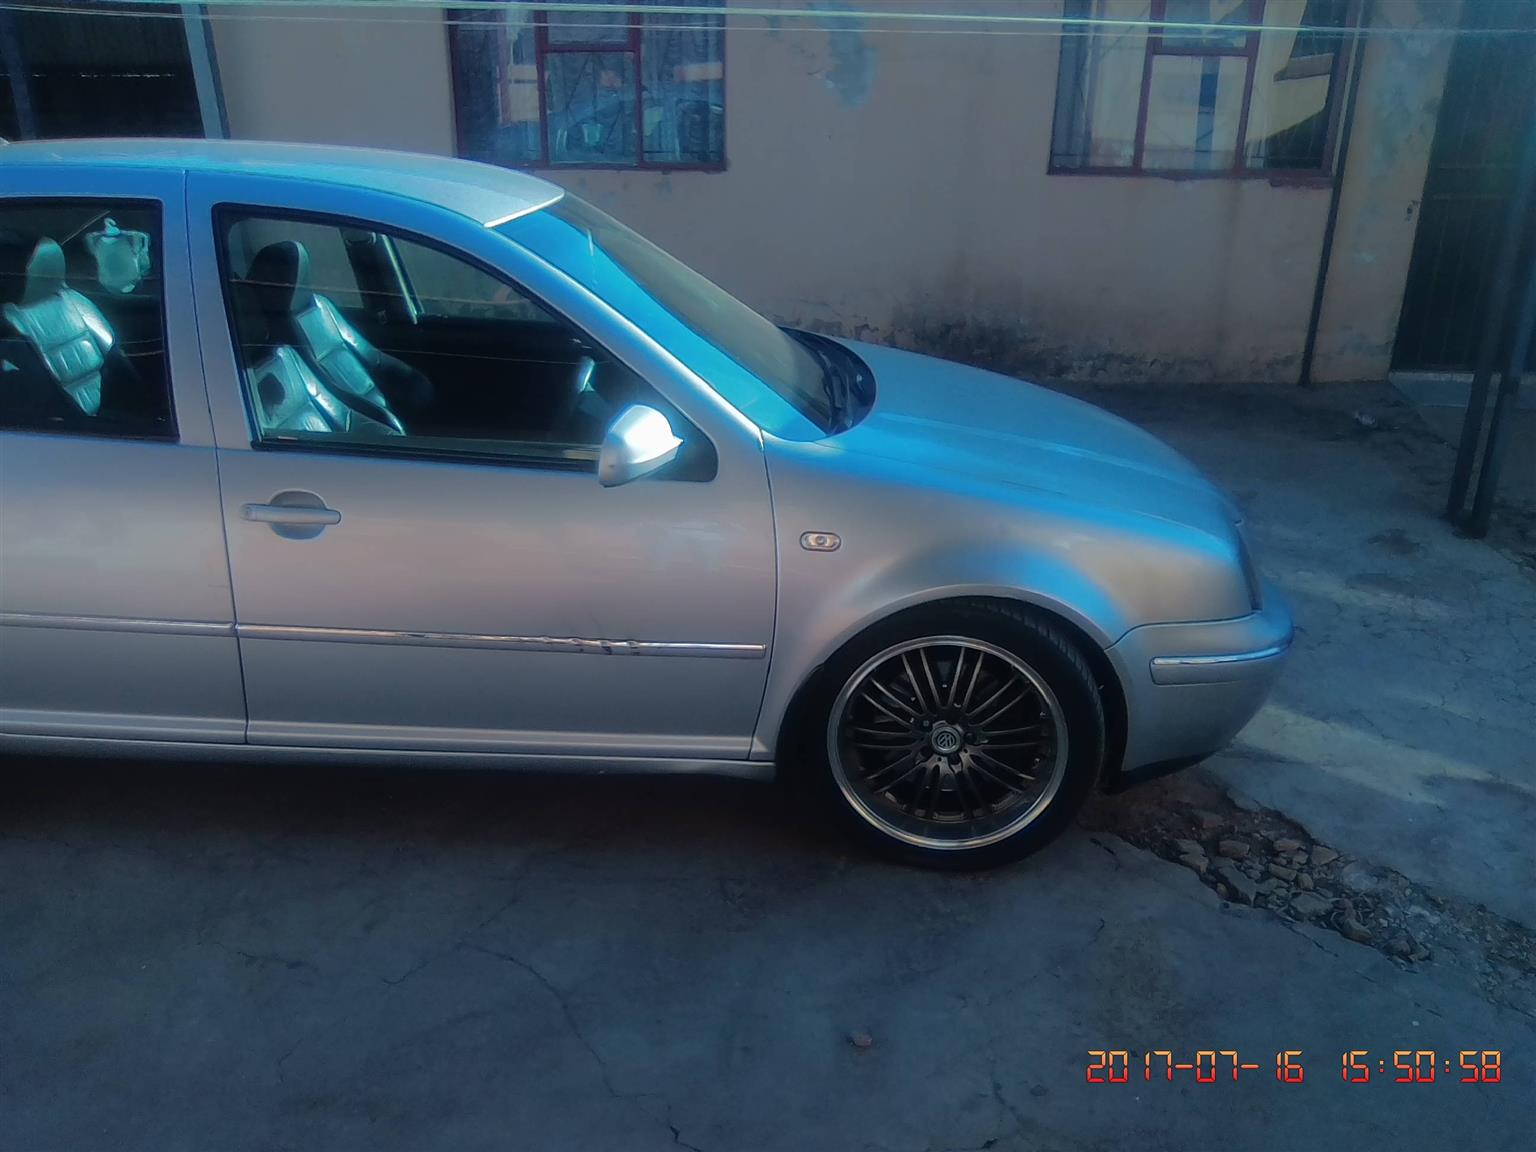 18 INCH RIMS ***NO DIFFERENCE EXCHANGE FOR STANDARD WHEELS AND RIMS***